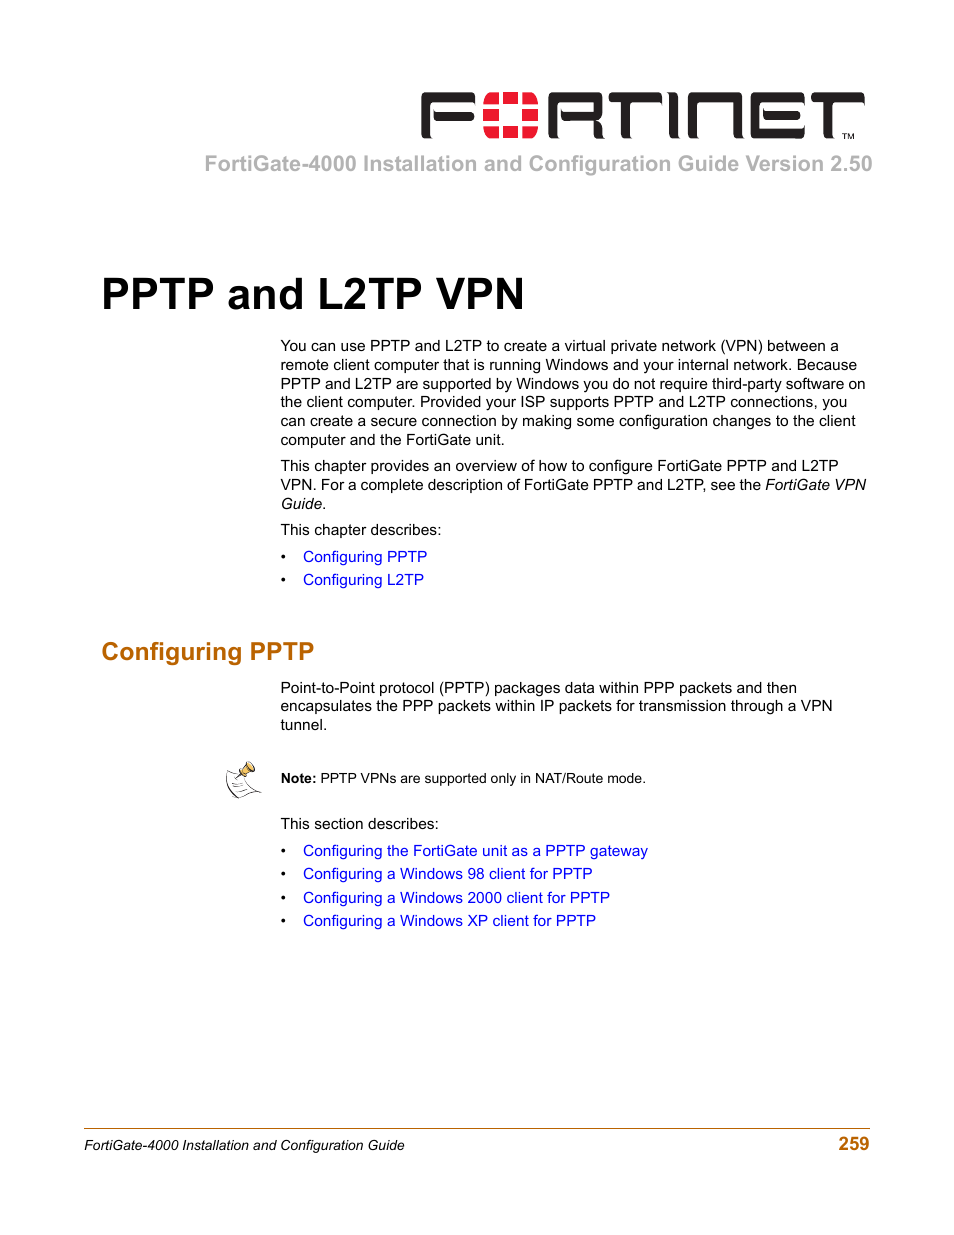 Pptp and l2tp vpn, Configuring pptp | Fortinet FortiGate